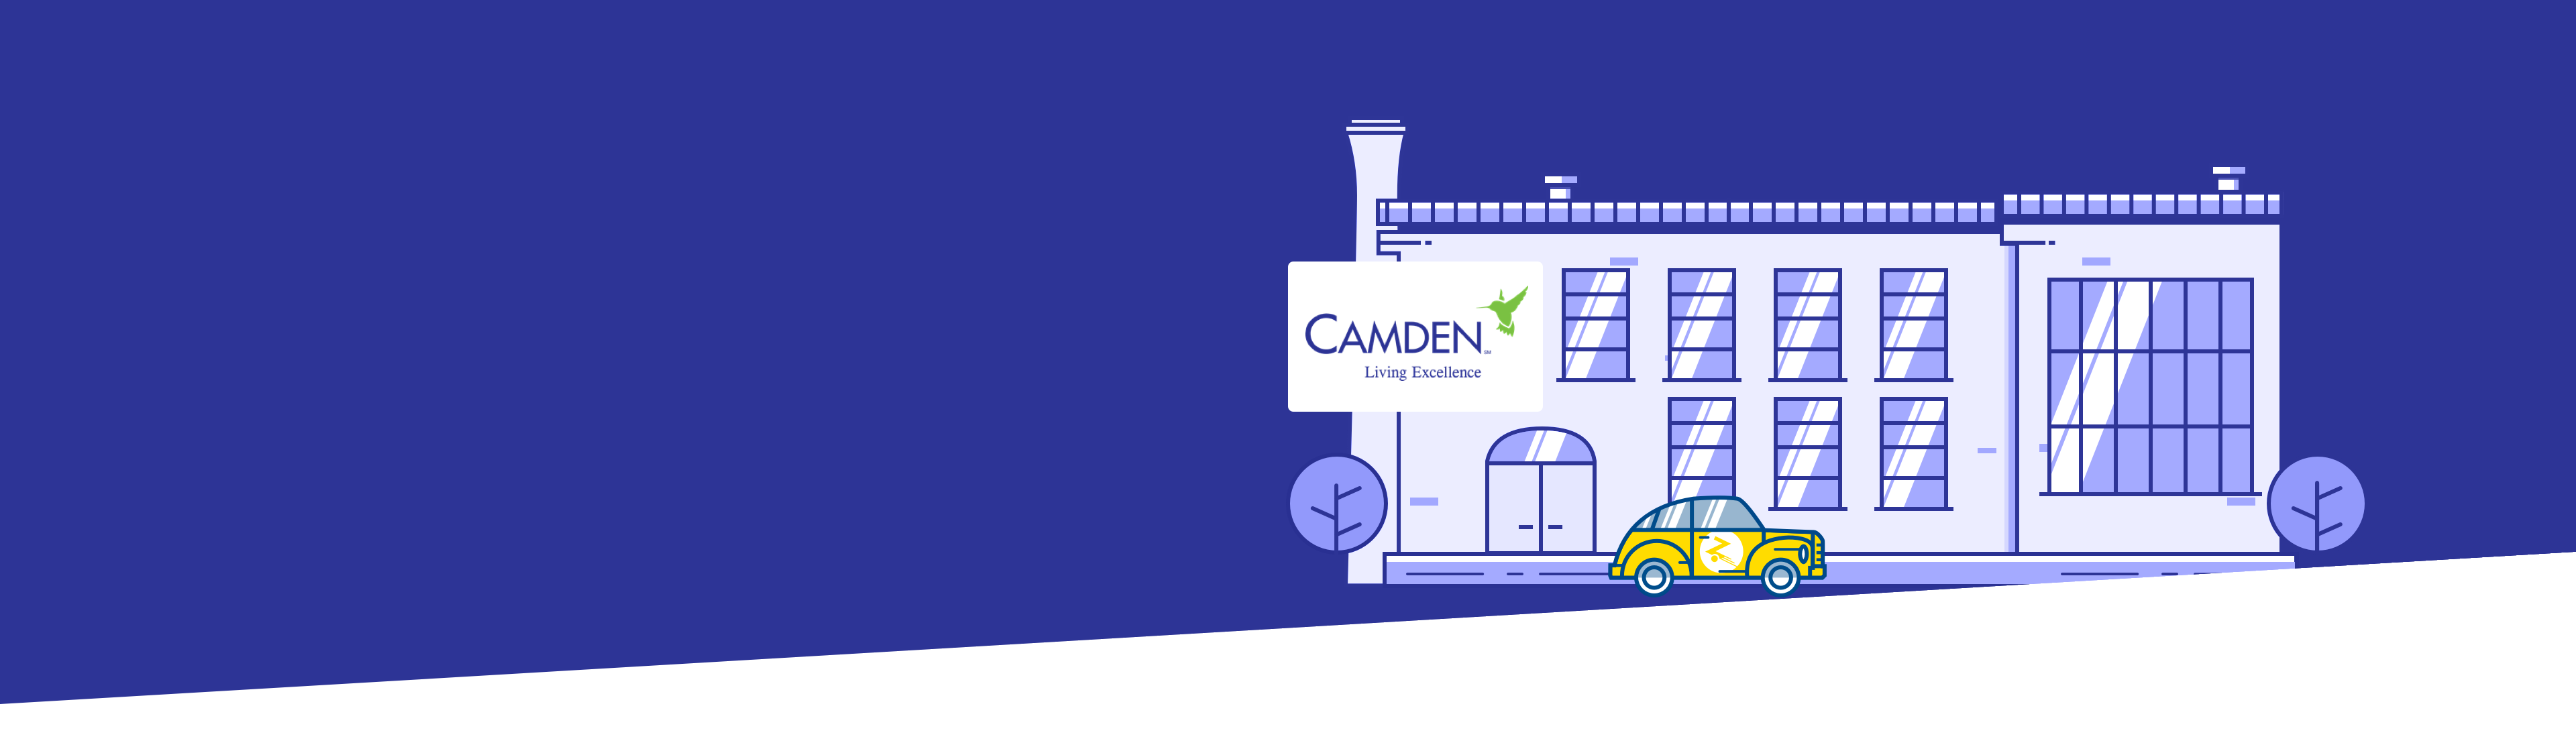 Building and Camden logo